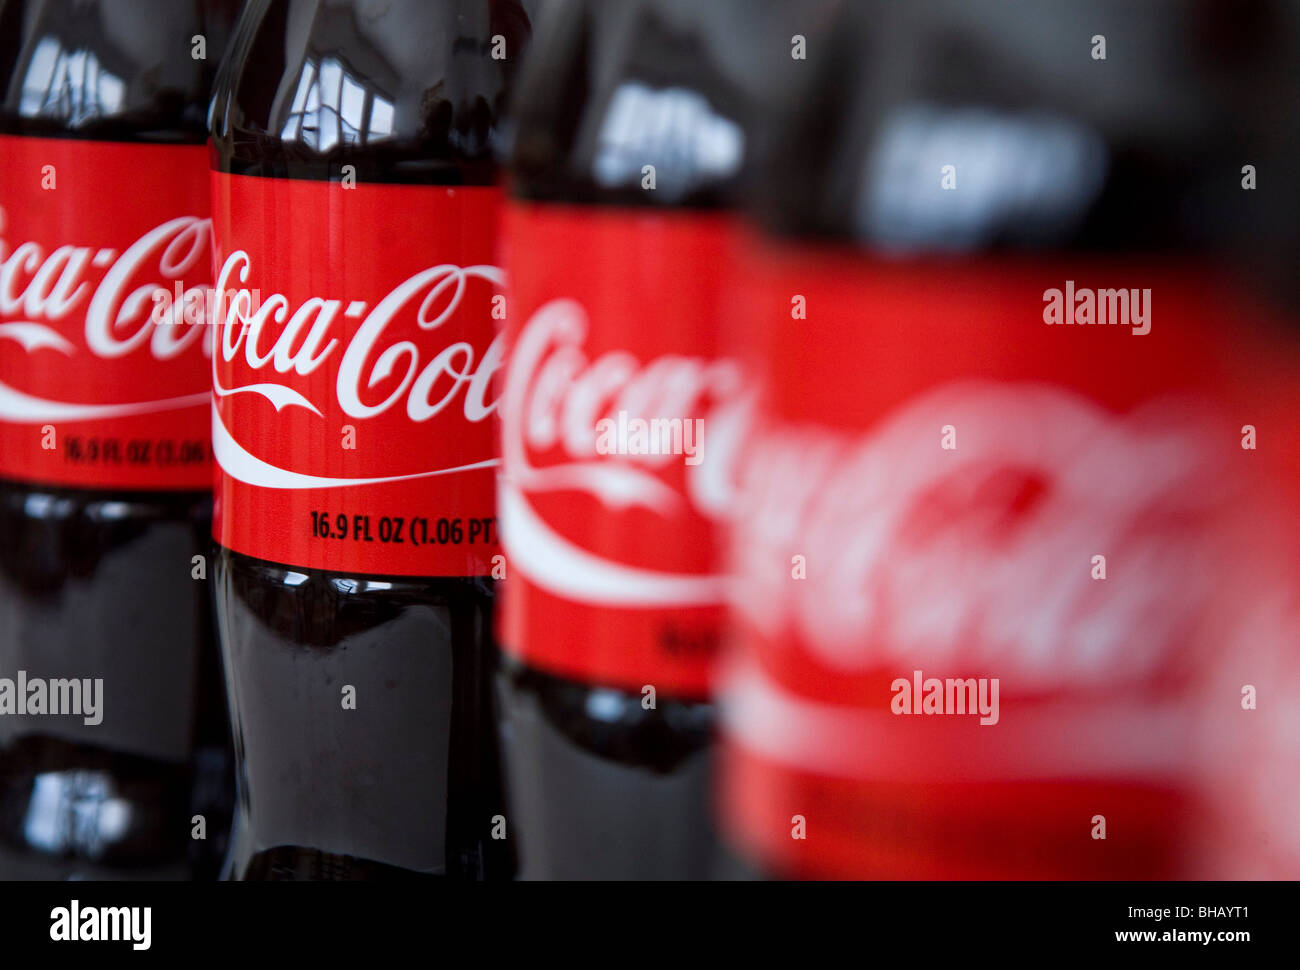 A grouping of Coca-Cola bottles.  - Stock Image